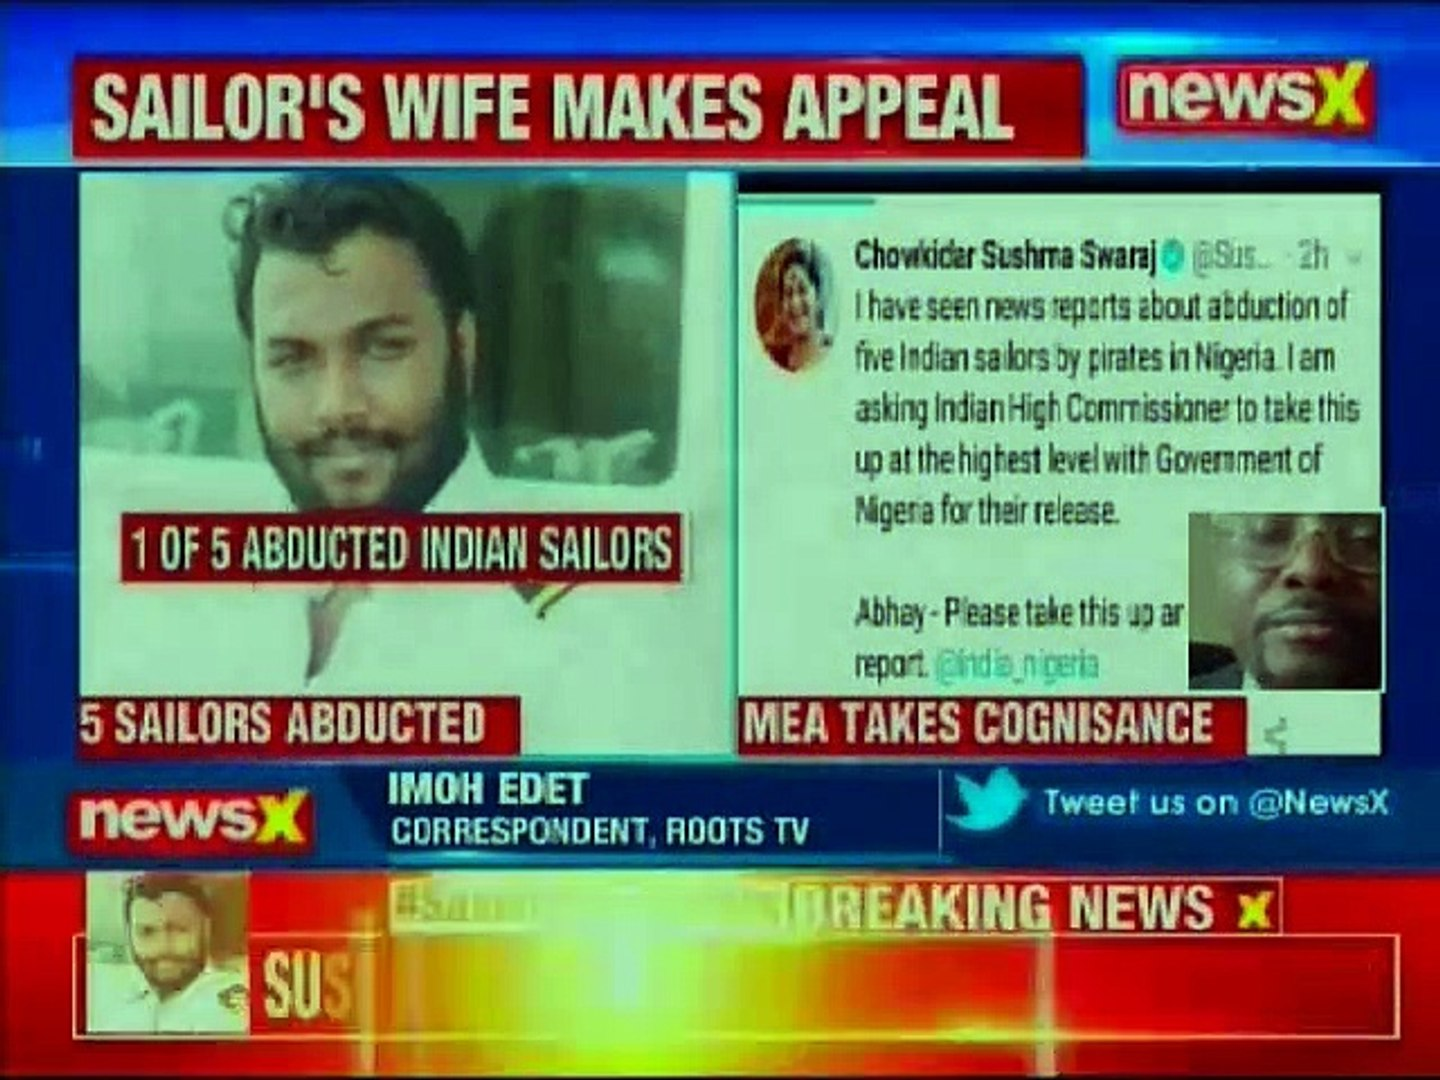 Nigerian Reporter on EAM Sushma Swaraj claim of 5 Indian sailors abducted in Nigeria by pirates